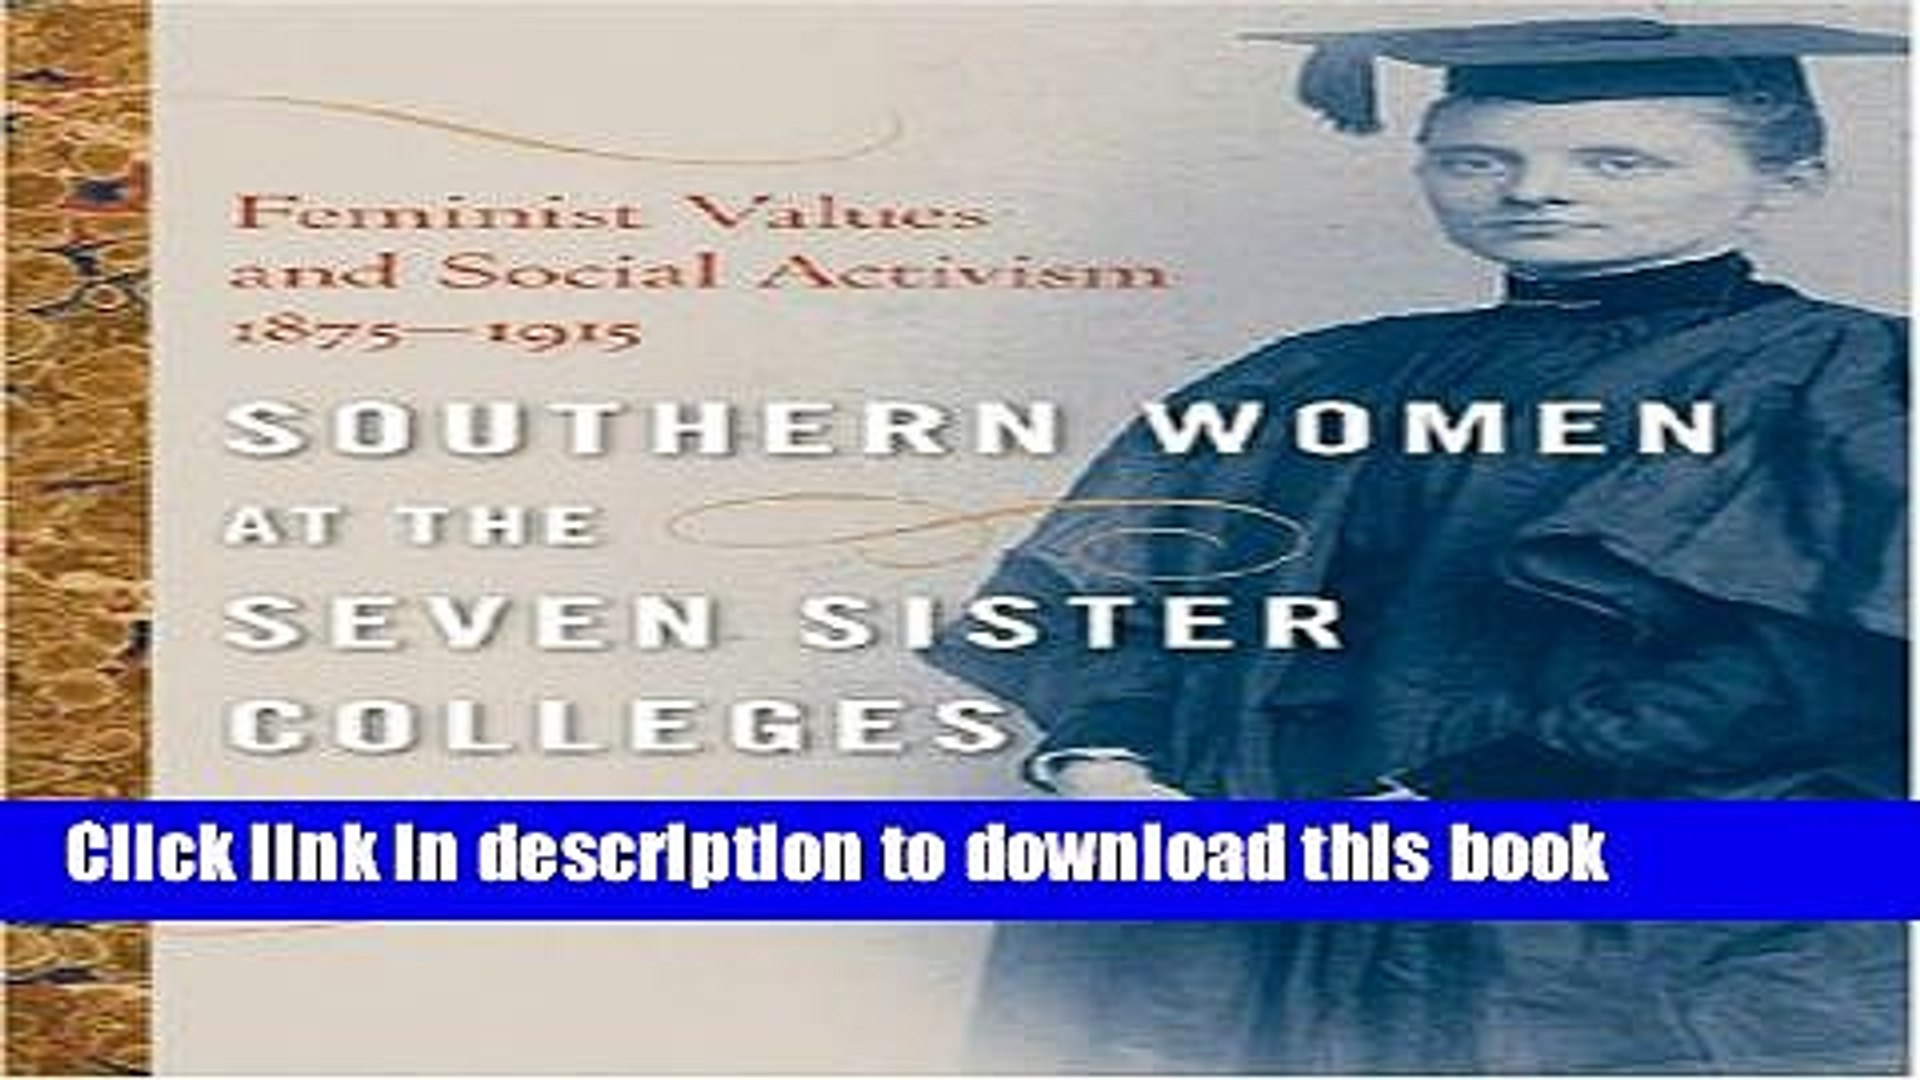 [Popular Books] Southern Women at the Seven Sister Colleges: Feminist Values and Social Activism,